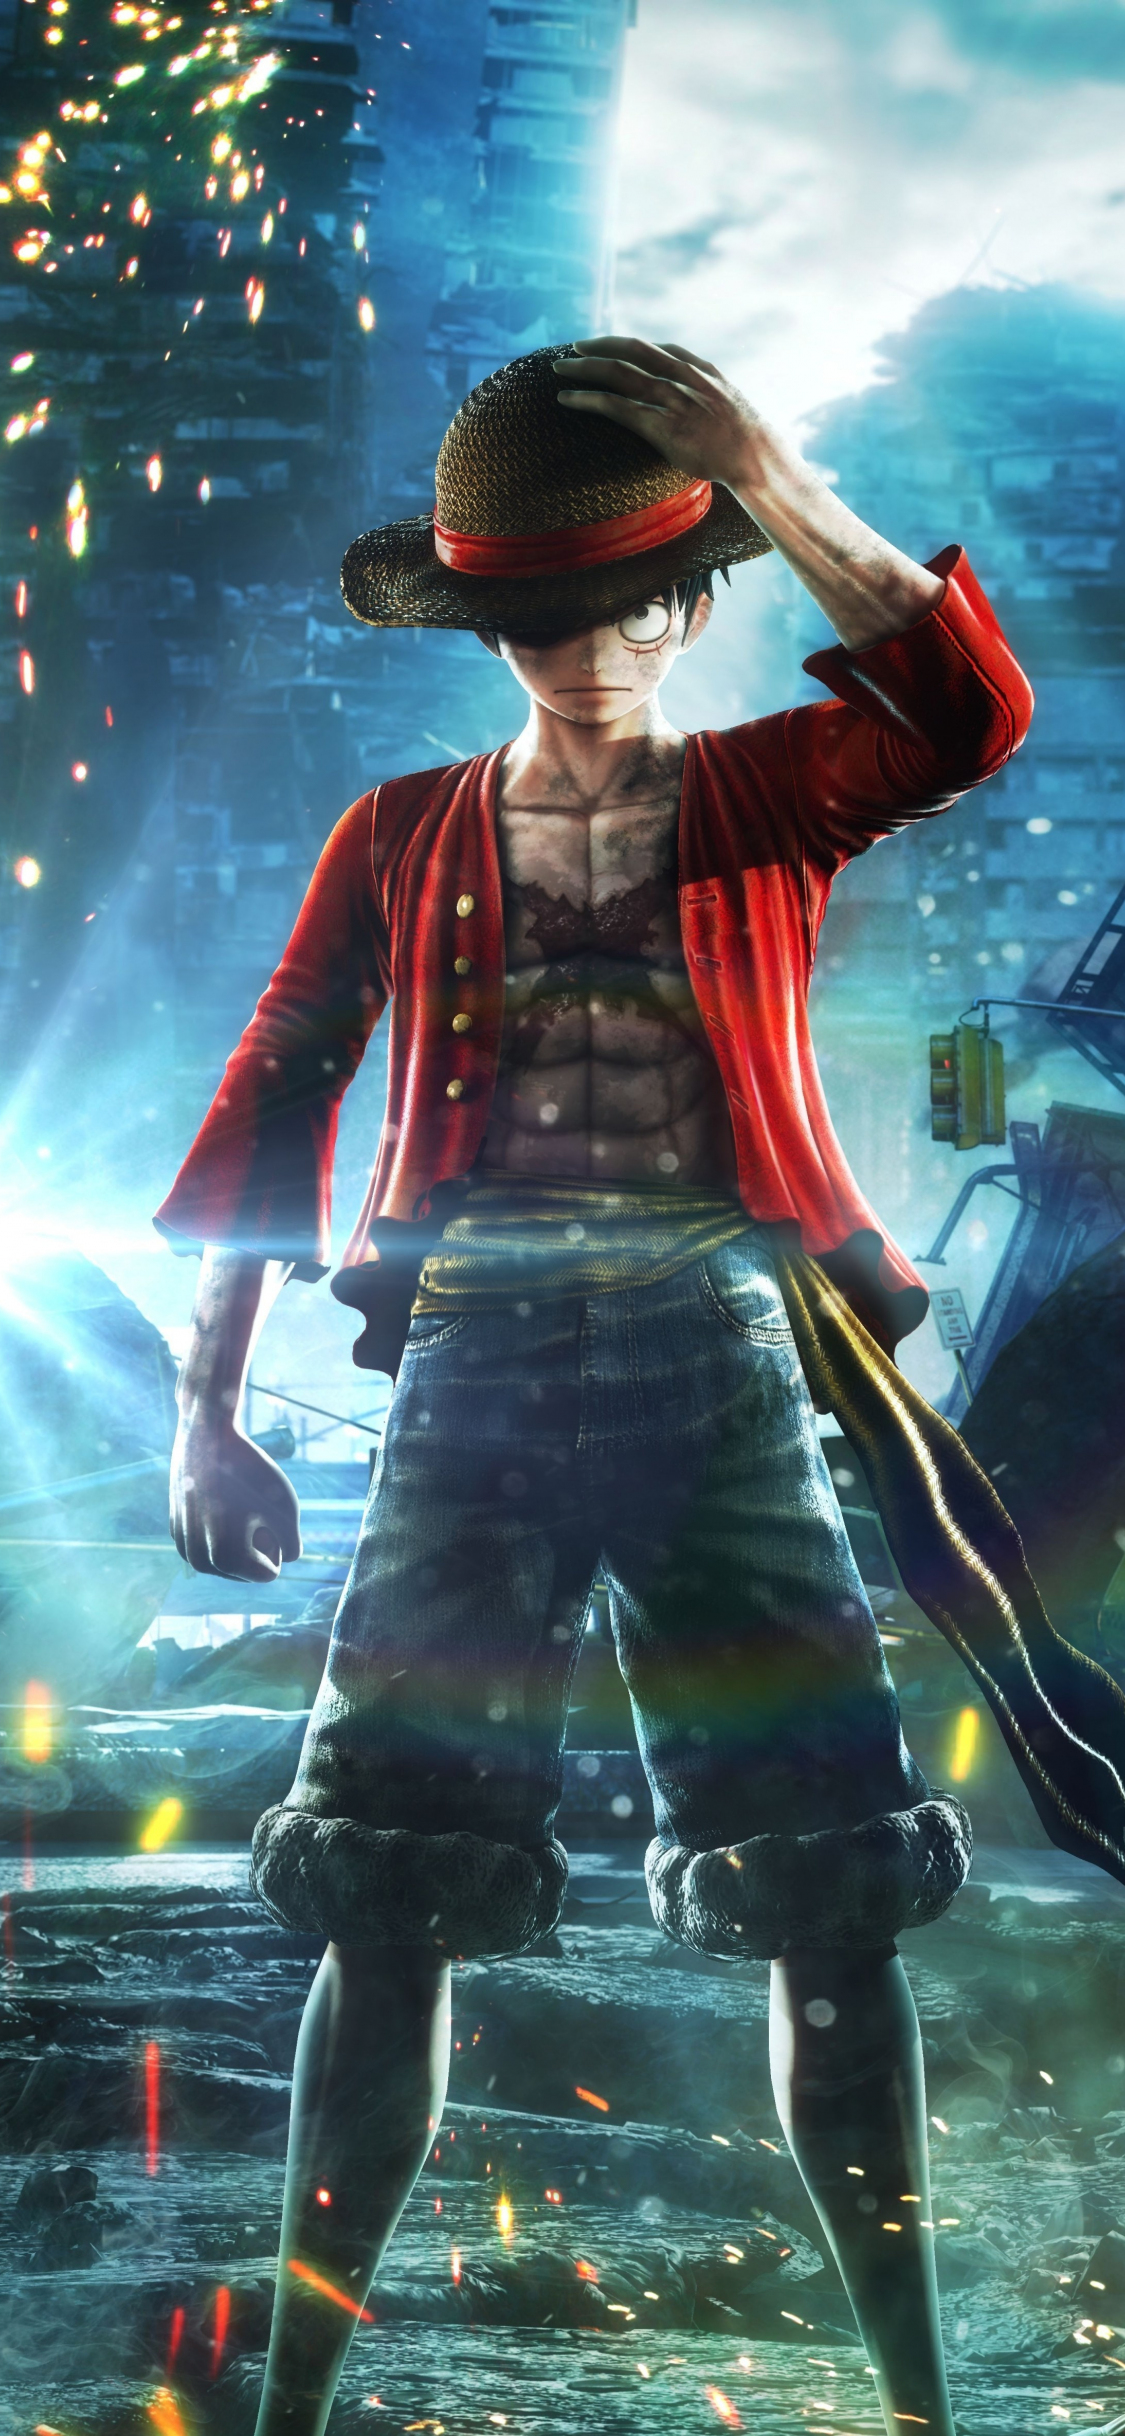 Download 1125x2436 Wallpaper Jump Force Anime Video Game